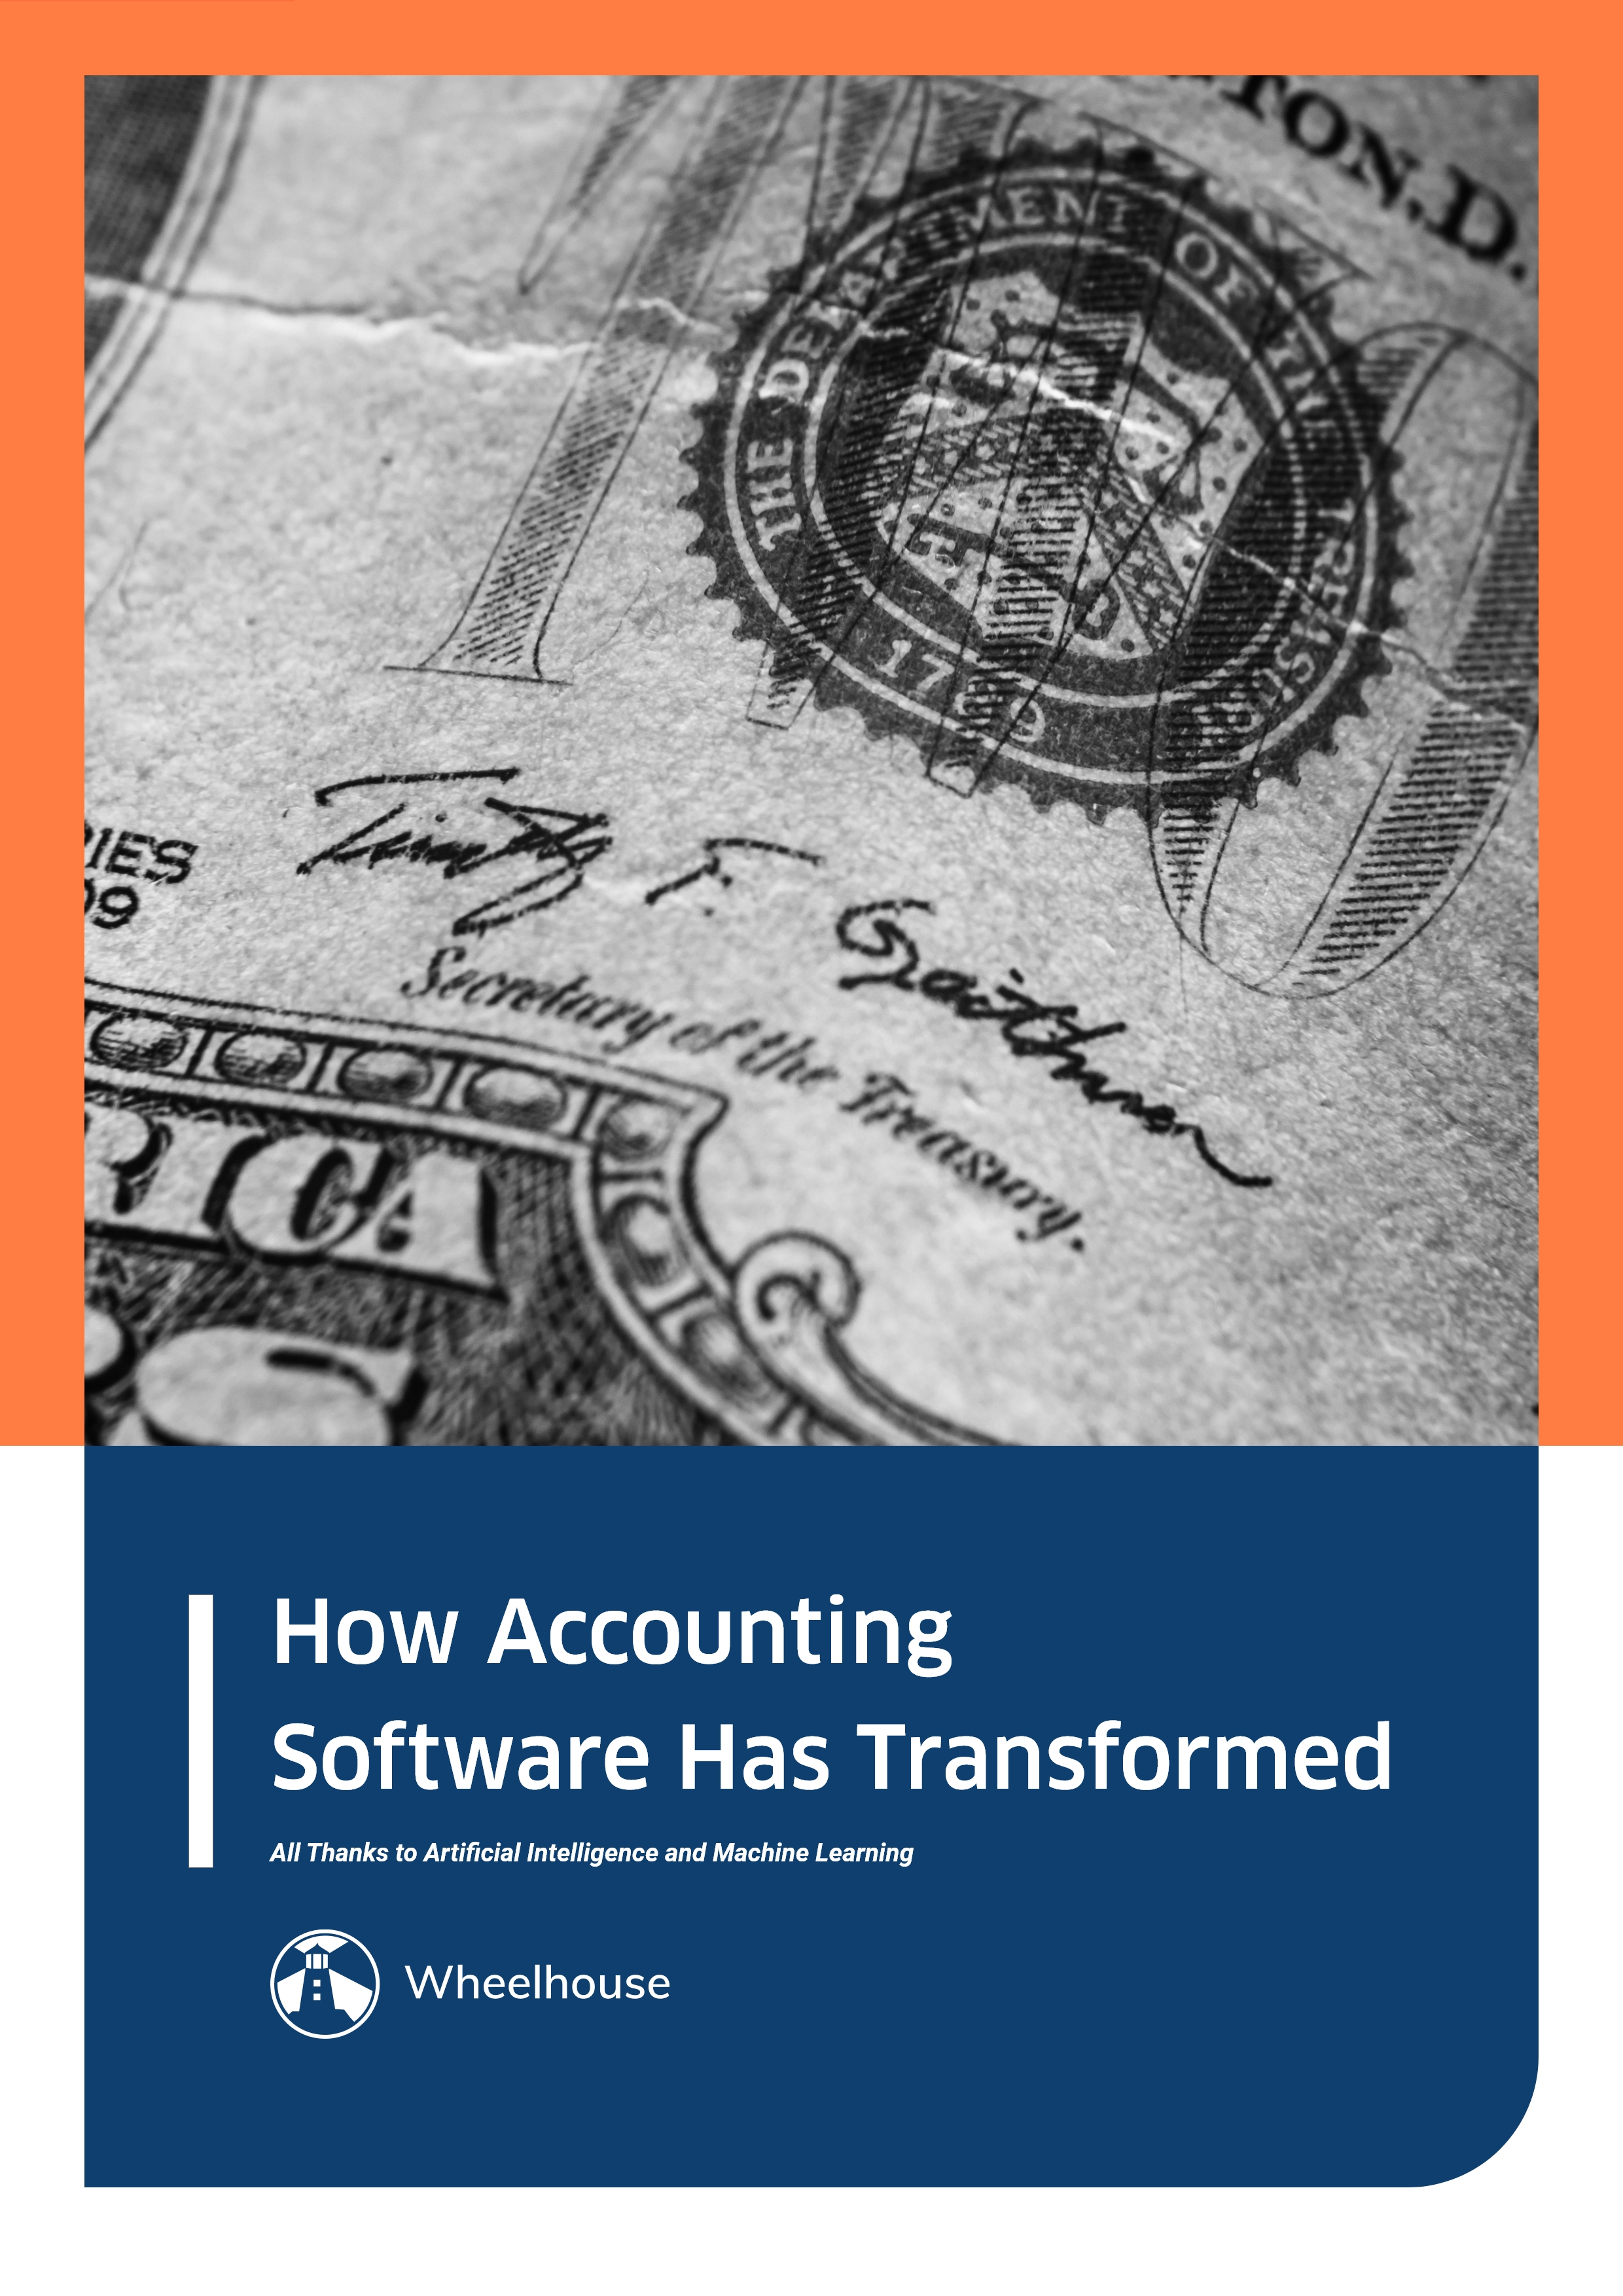 how-accounting-software-has-transformed-ai-machine-learning